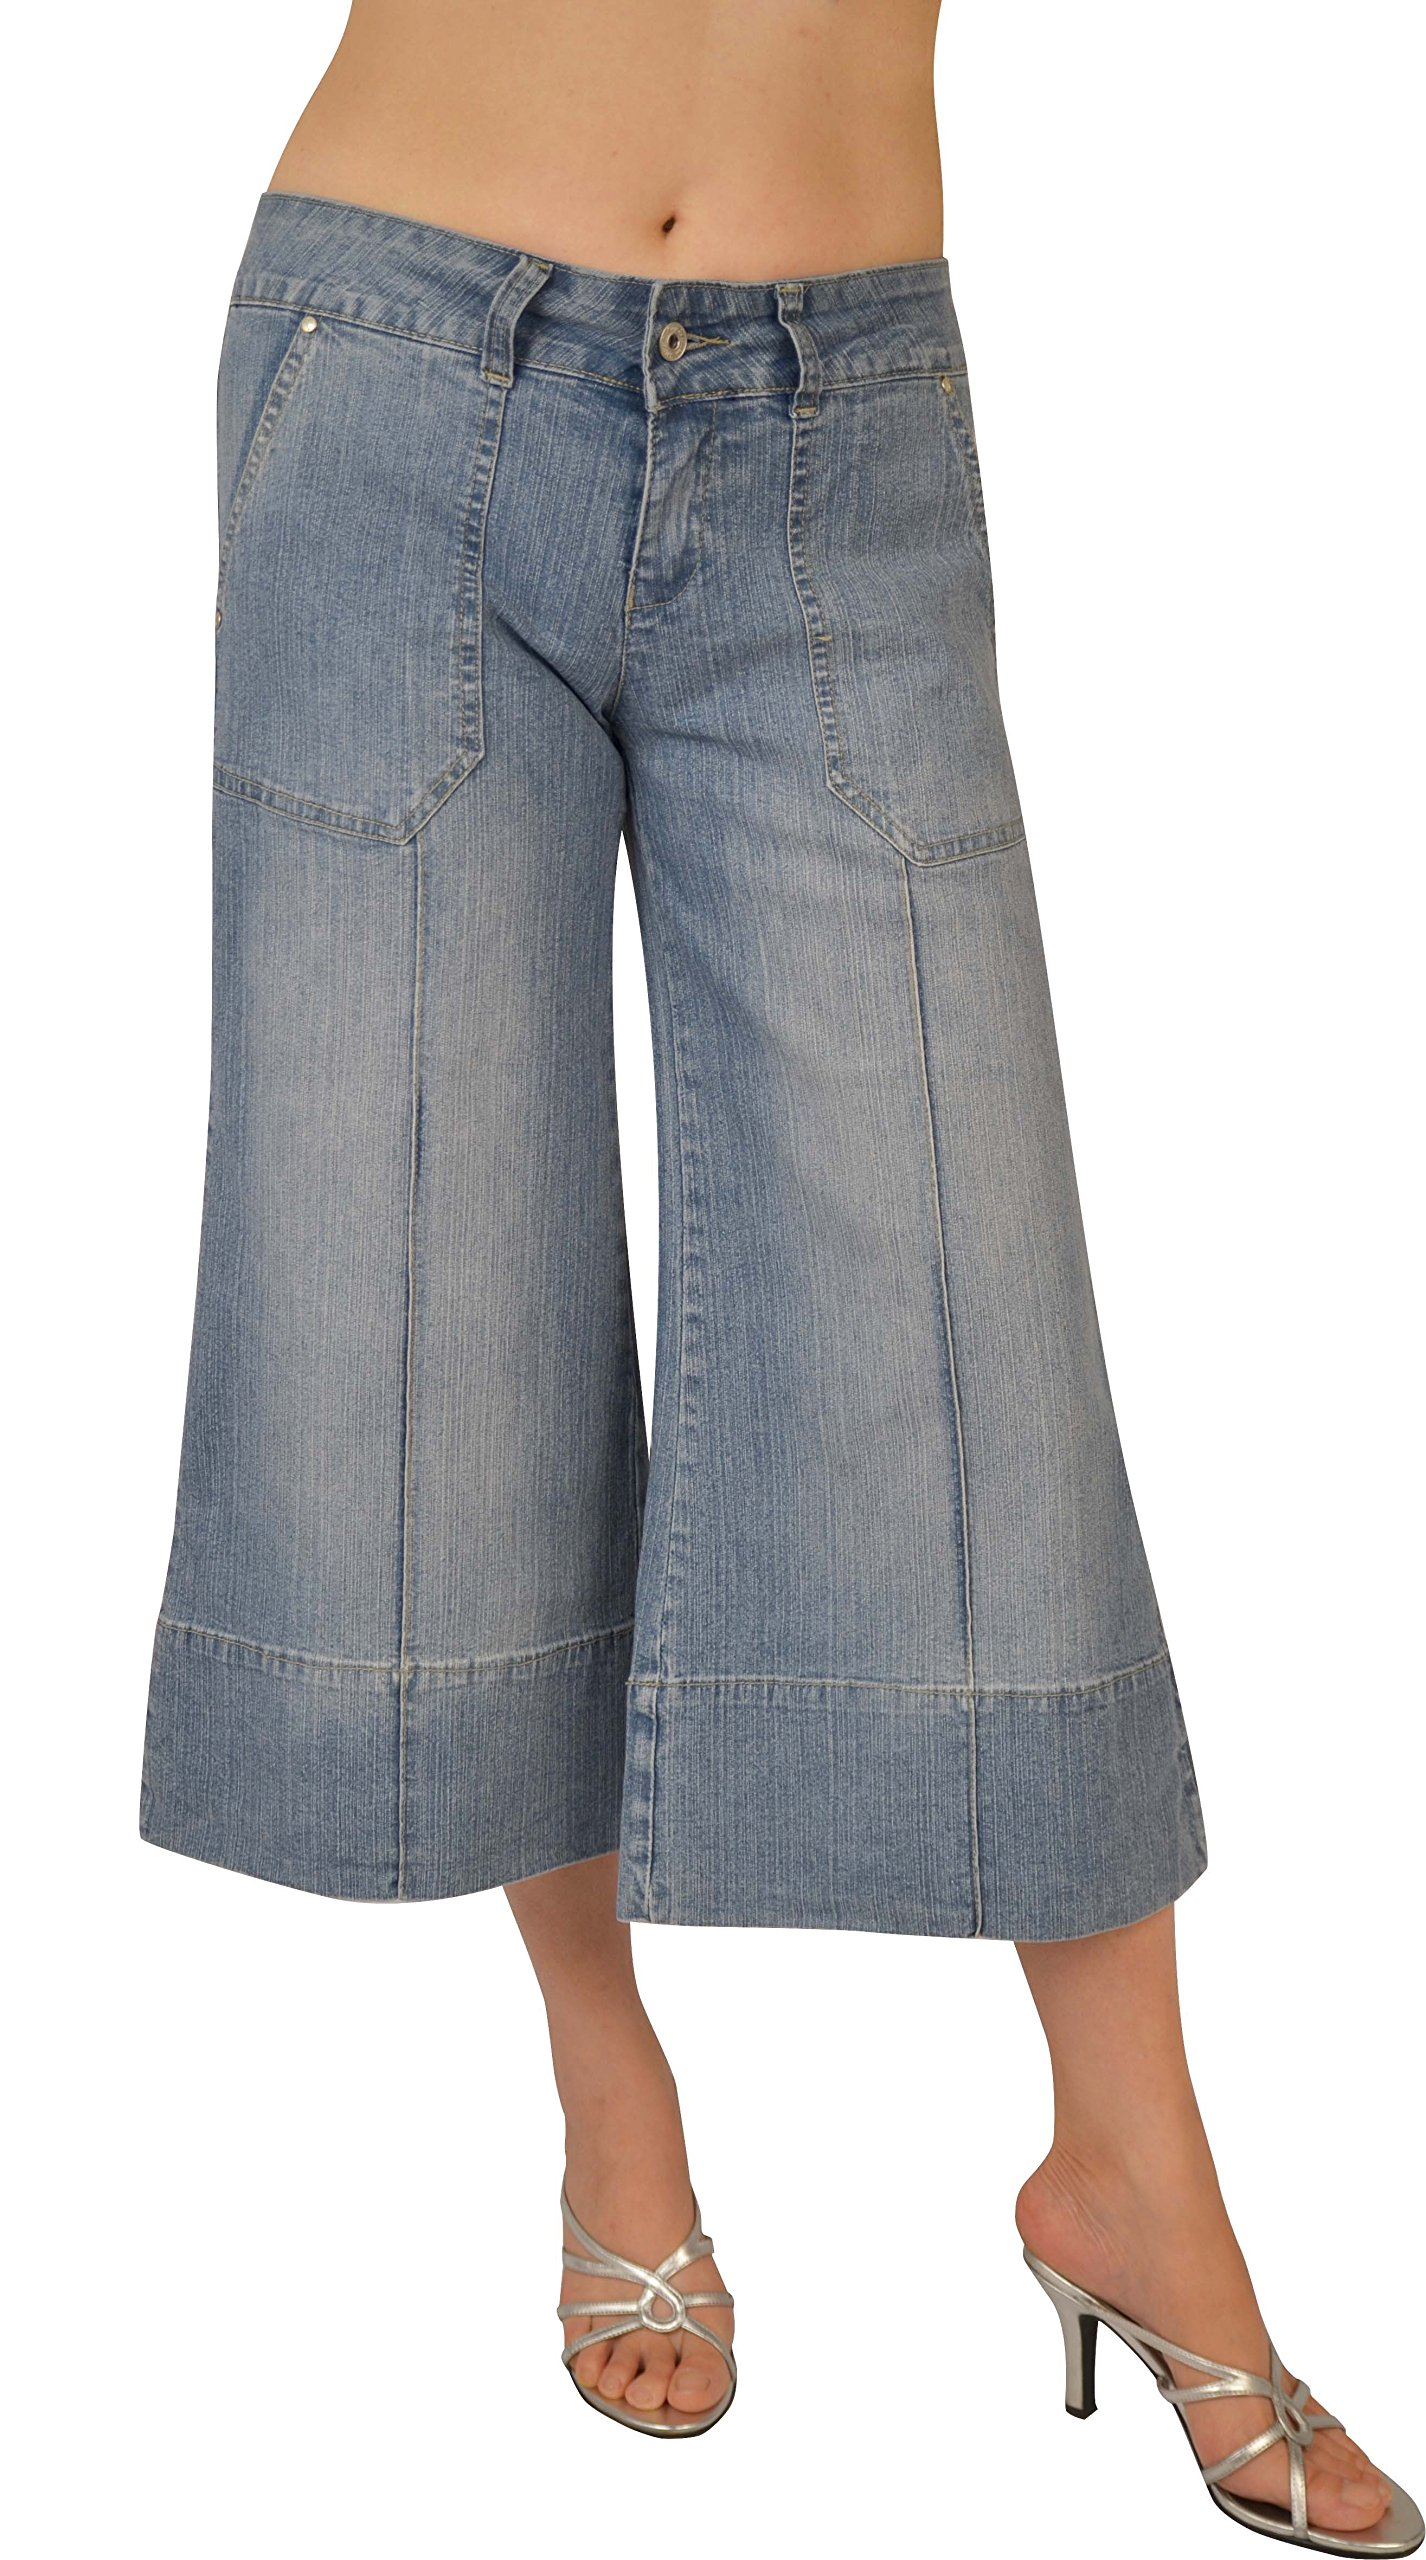 Kit Womens Lt. Sand Blue Stretch Denim Gaucho #L217 Size: 9 by KEEP IN TOUCH (Image #1)